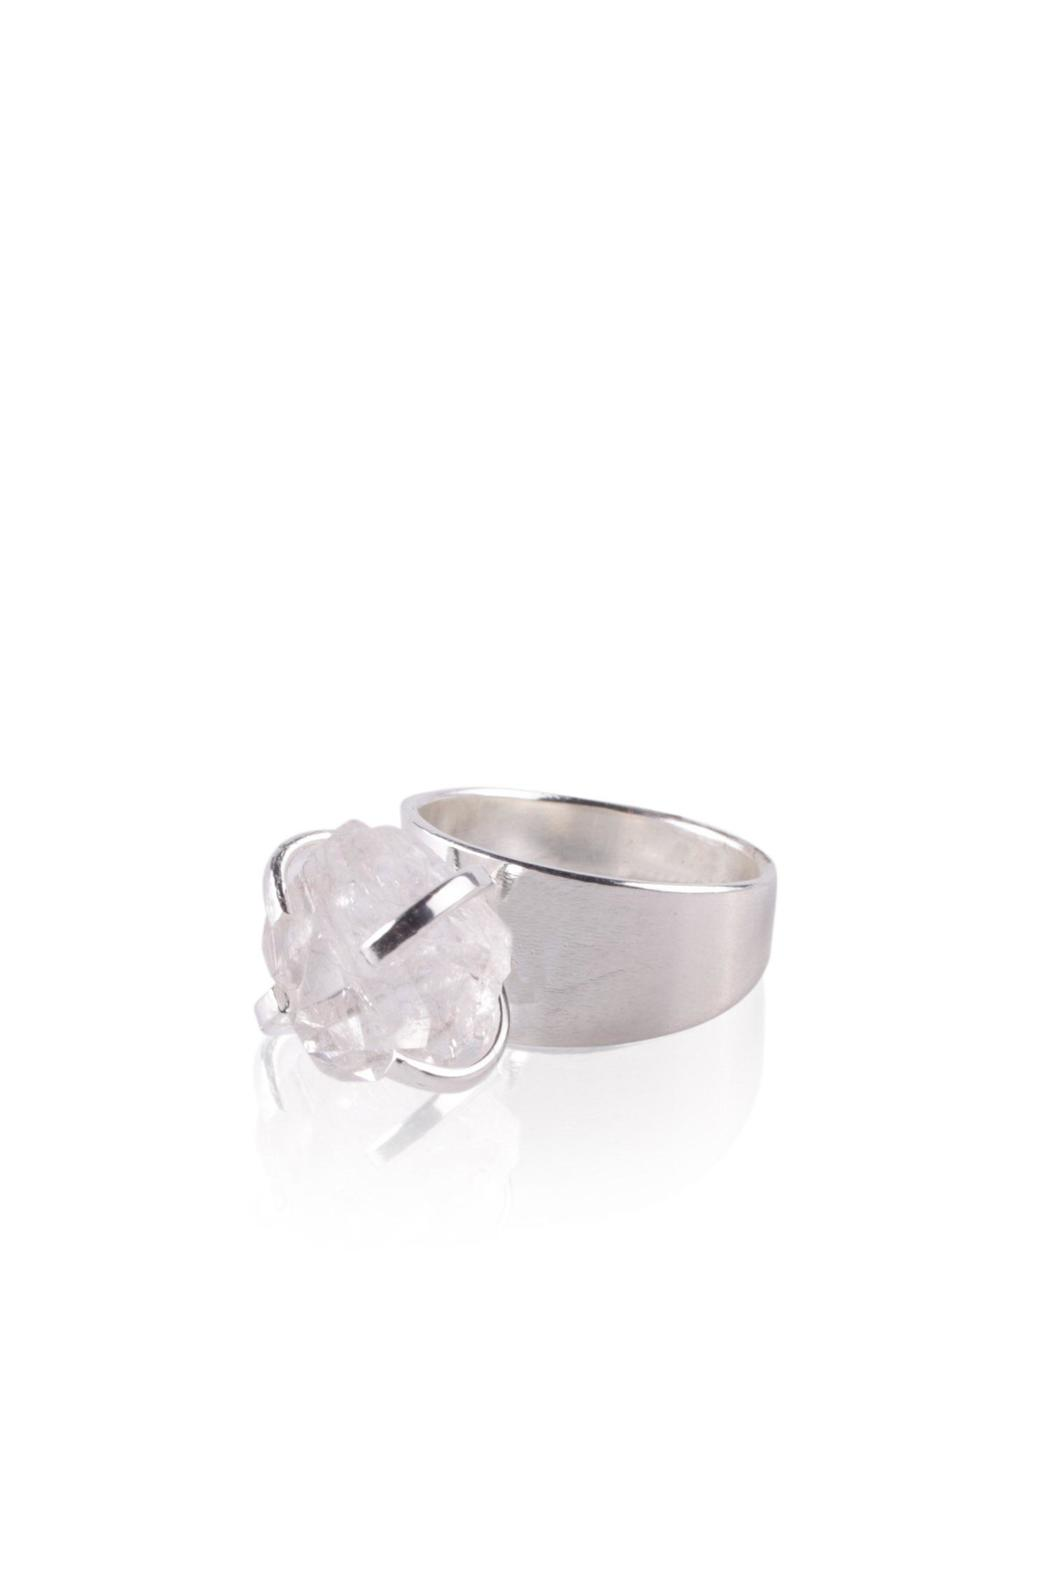 Sayulita Sol Jewelry Rock Crystal Ring - Main Image